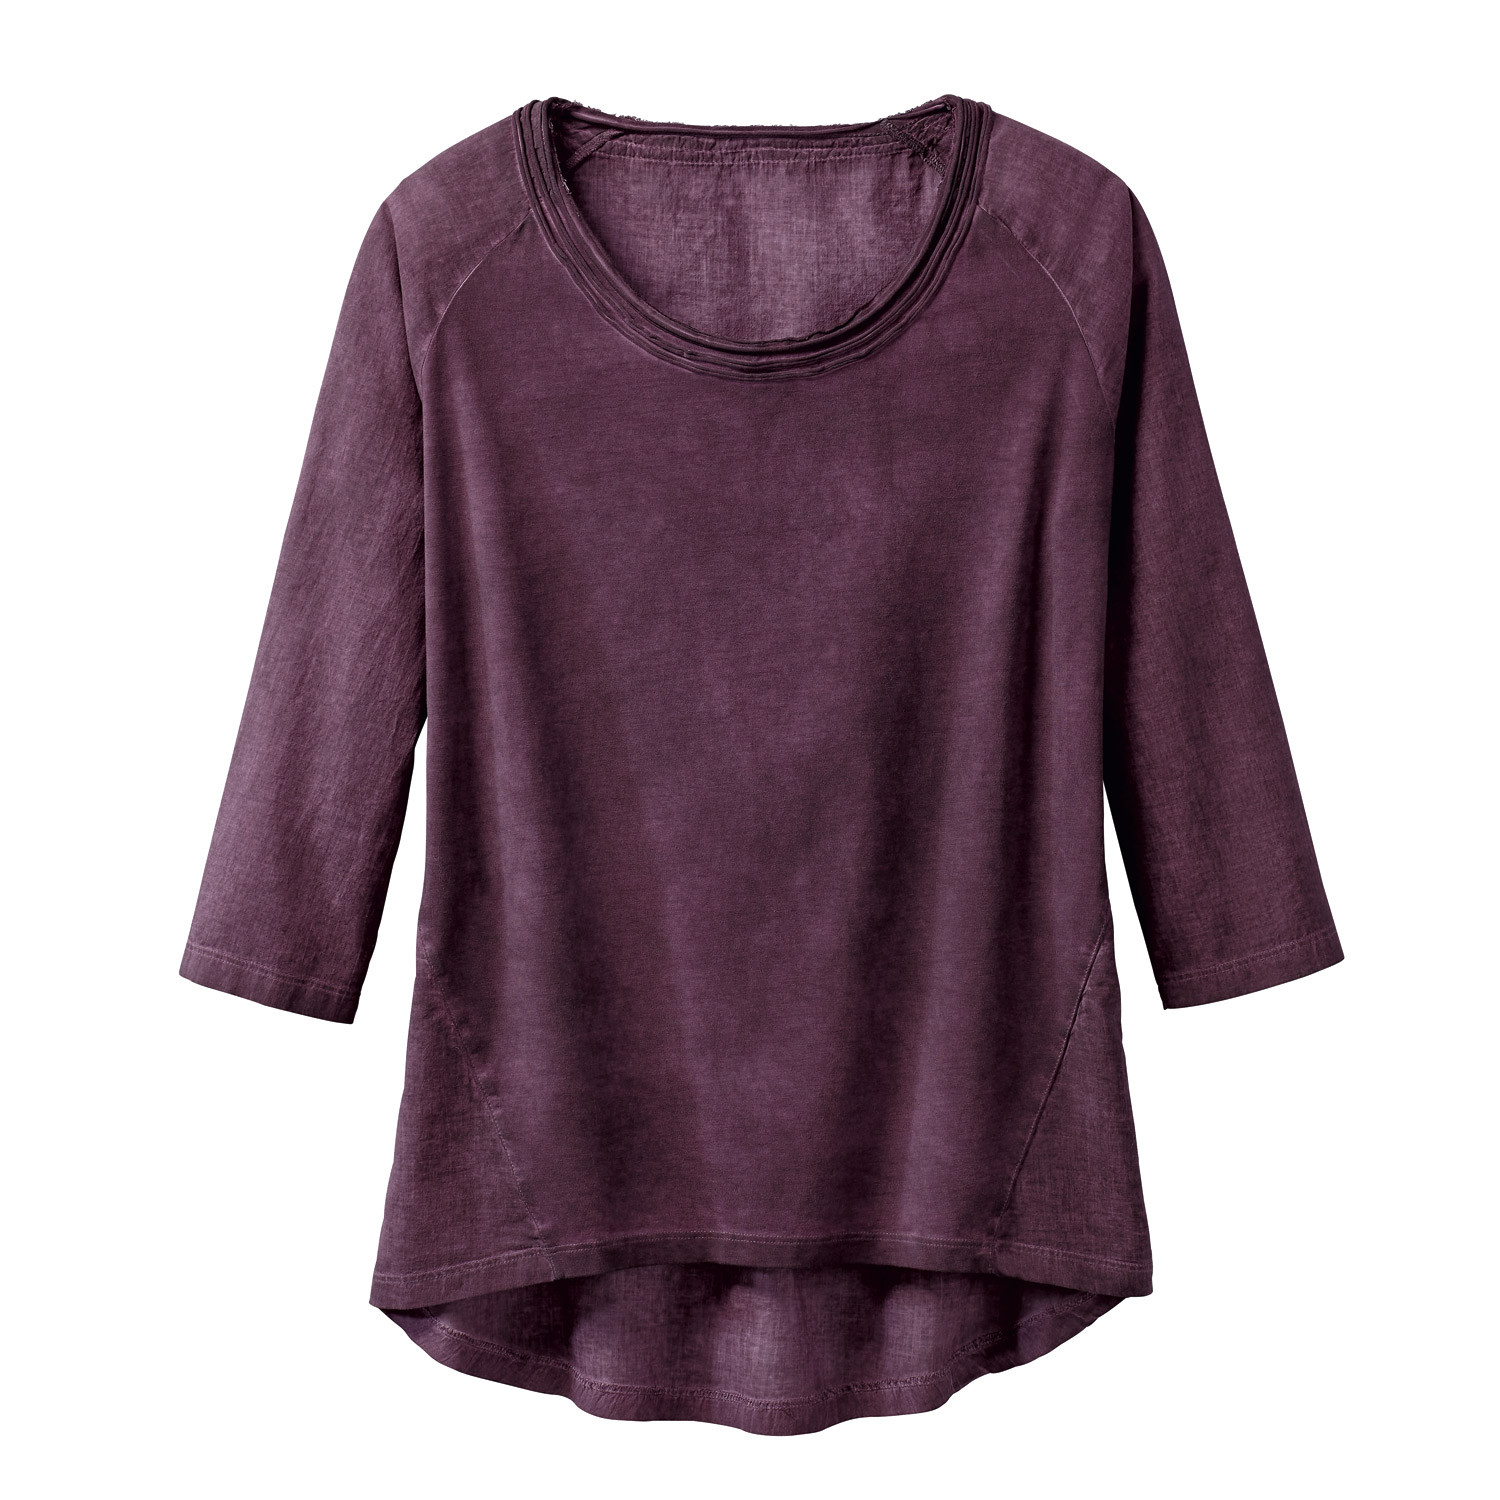 Oversized-Shirt, cassis